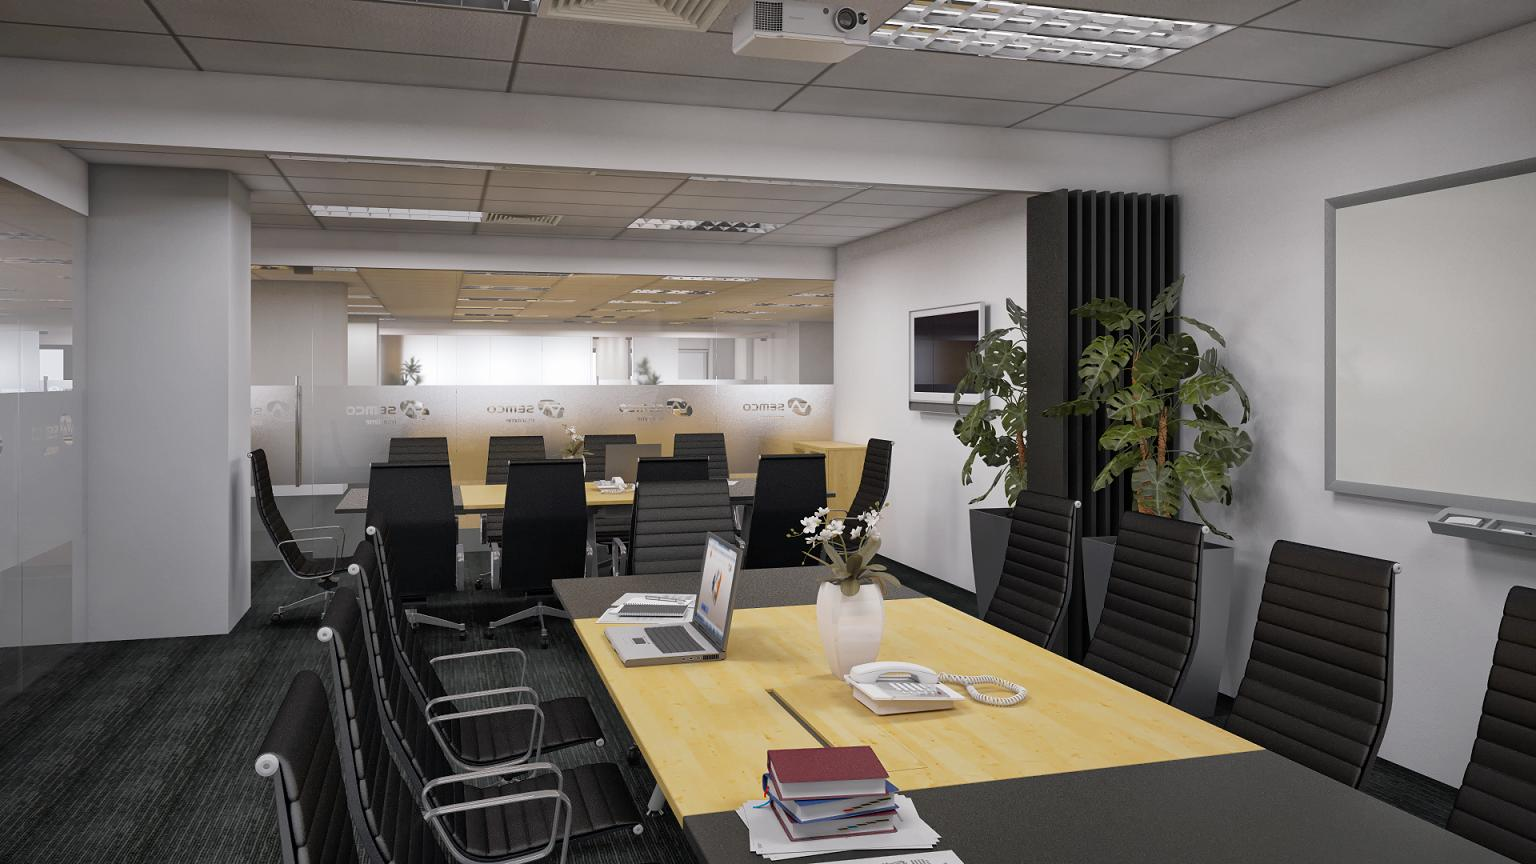 Office Renovation office renovation singapore | expanding and growing your businesses